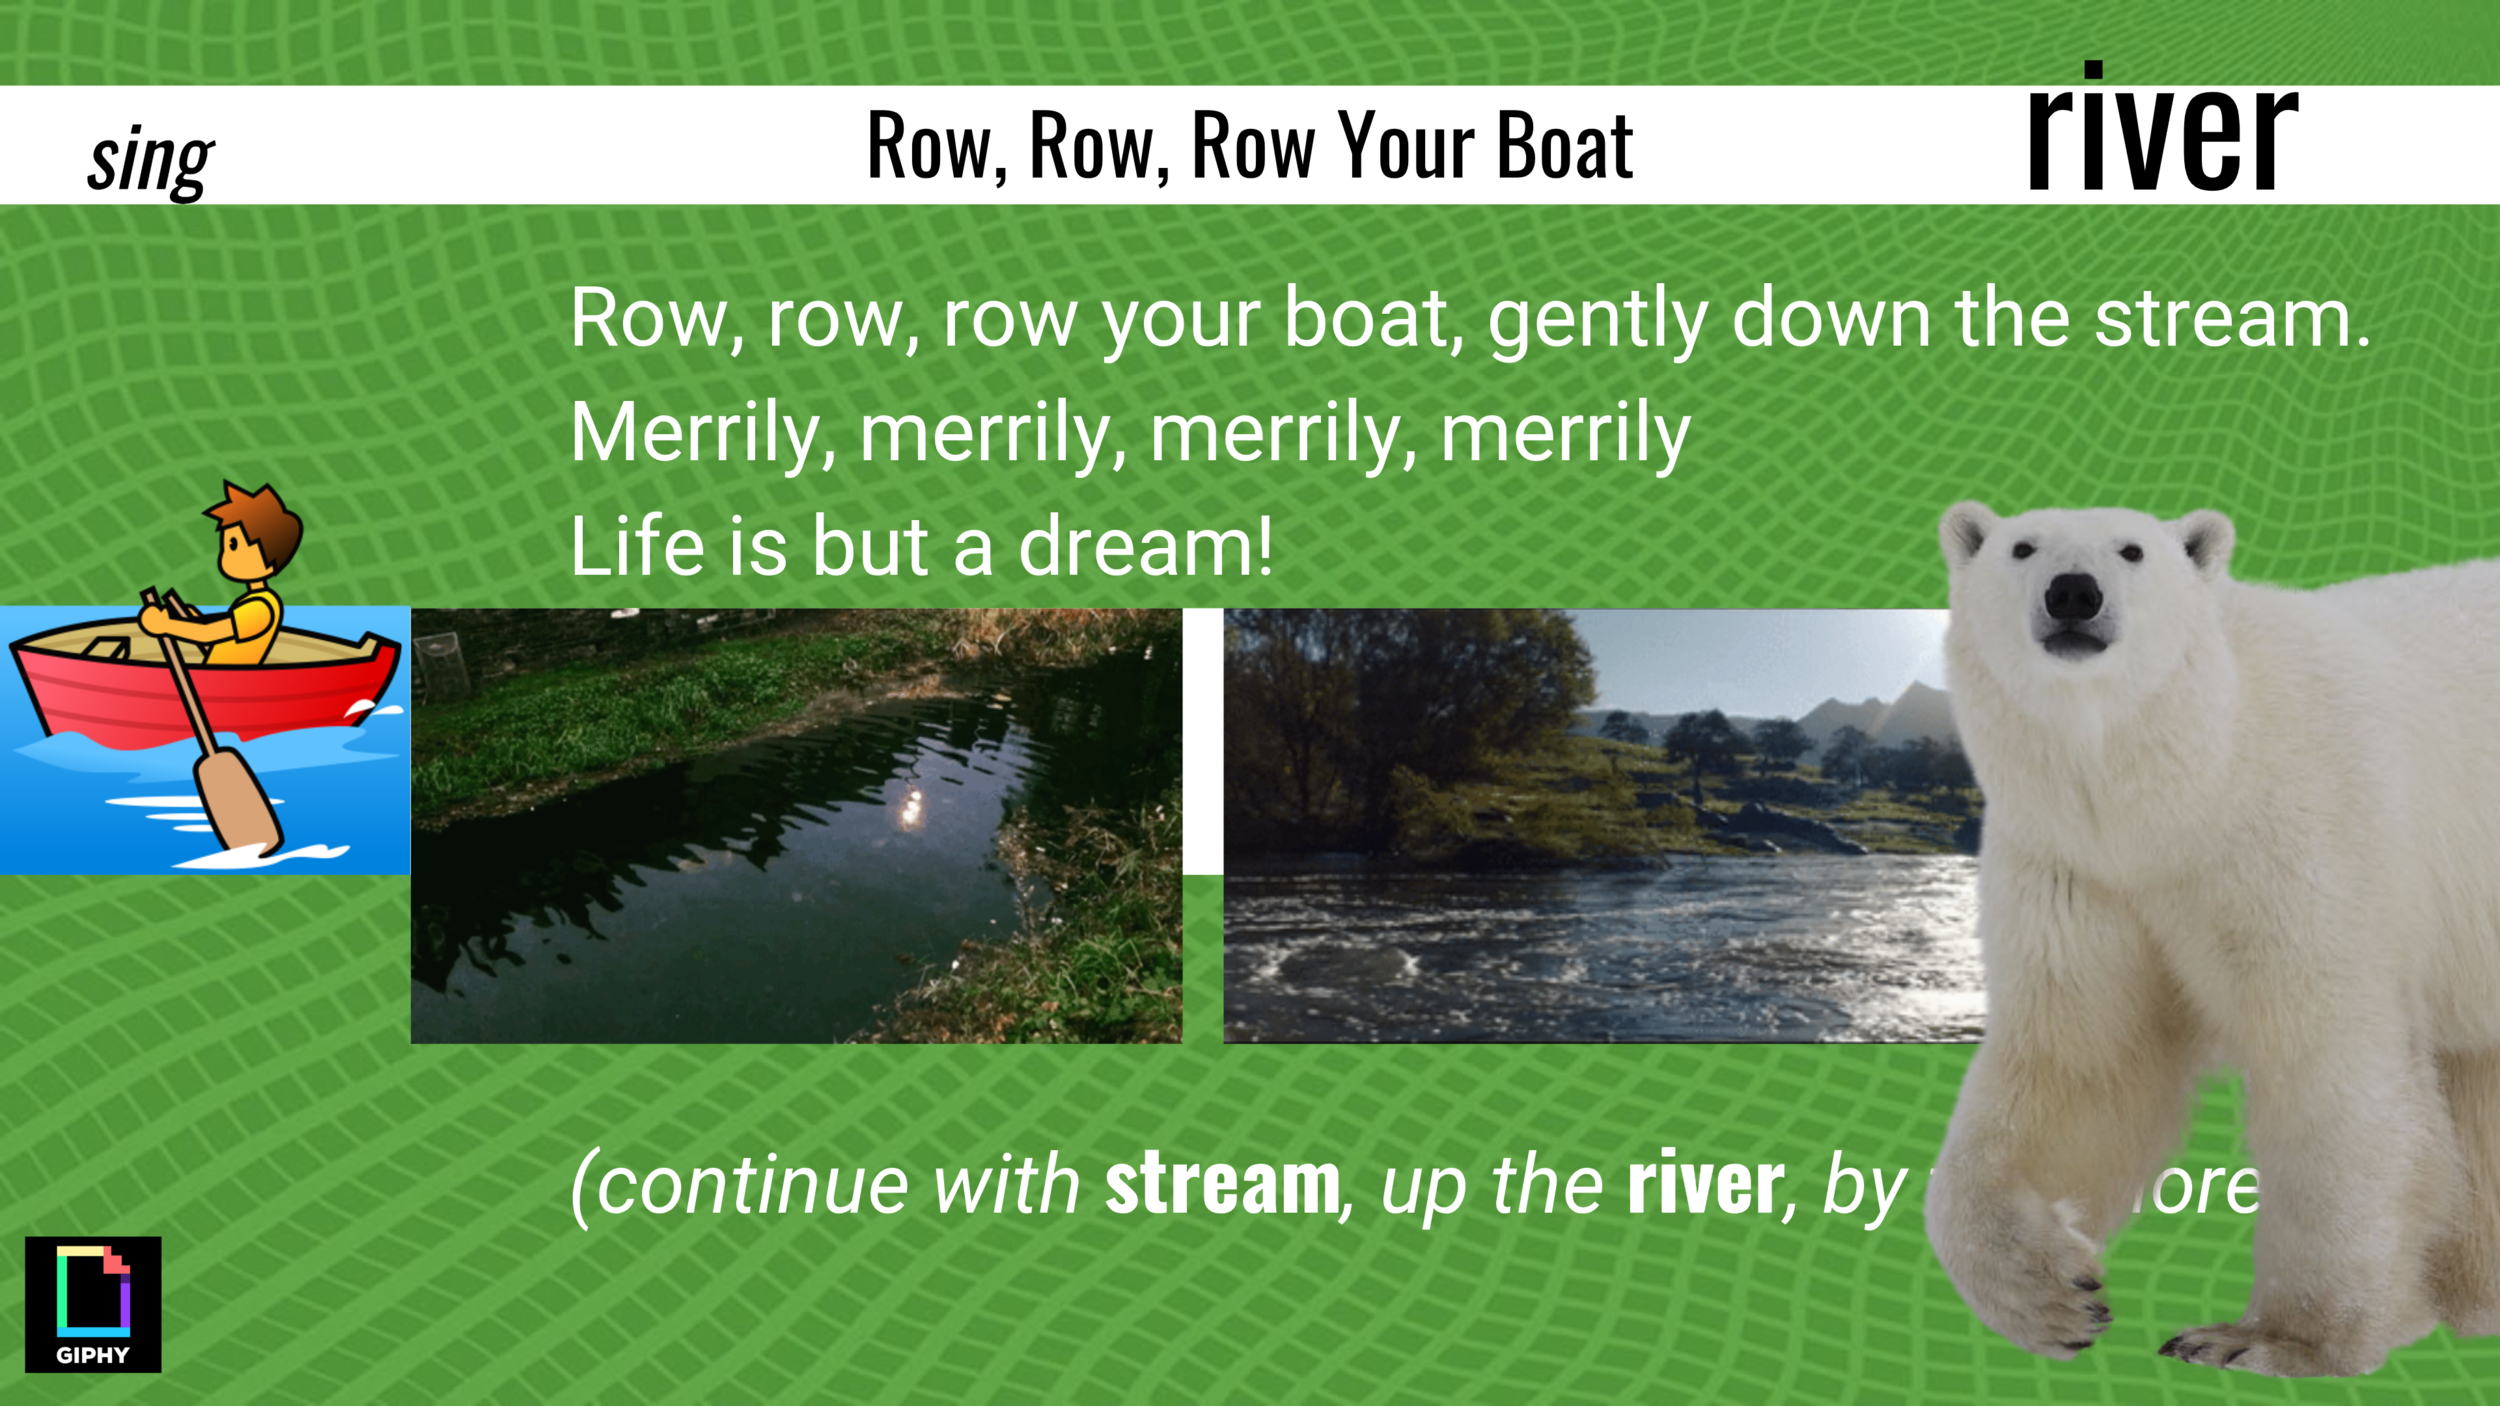 Row, row, row your boat, gently down the stream. If your see a crocodile, don't forget to scream!  Row, row, row your boat, gently up the river. If you see a polar bear, don't forget to shiver! Row, row, row your boat, gently by the shore. If you see a lion, don't forget to roar!  I animate a crocodile (scream), polar bear (shiver), and lion (roar), as extensions to this song.